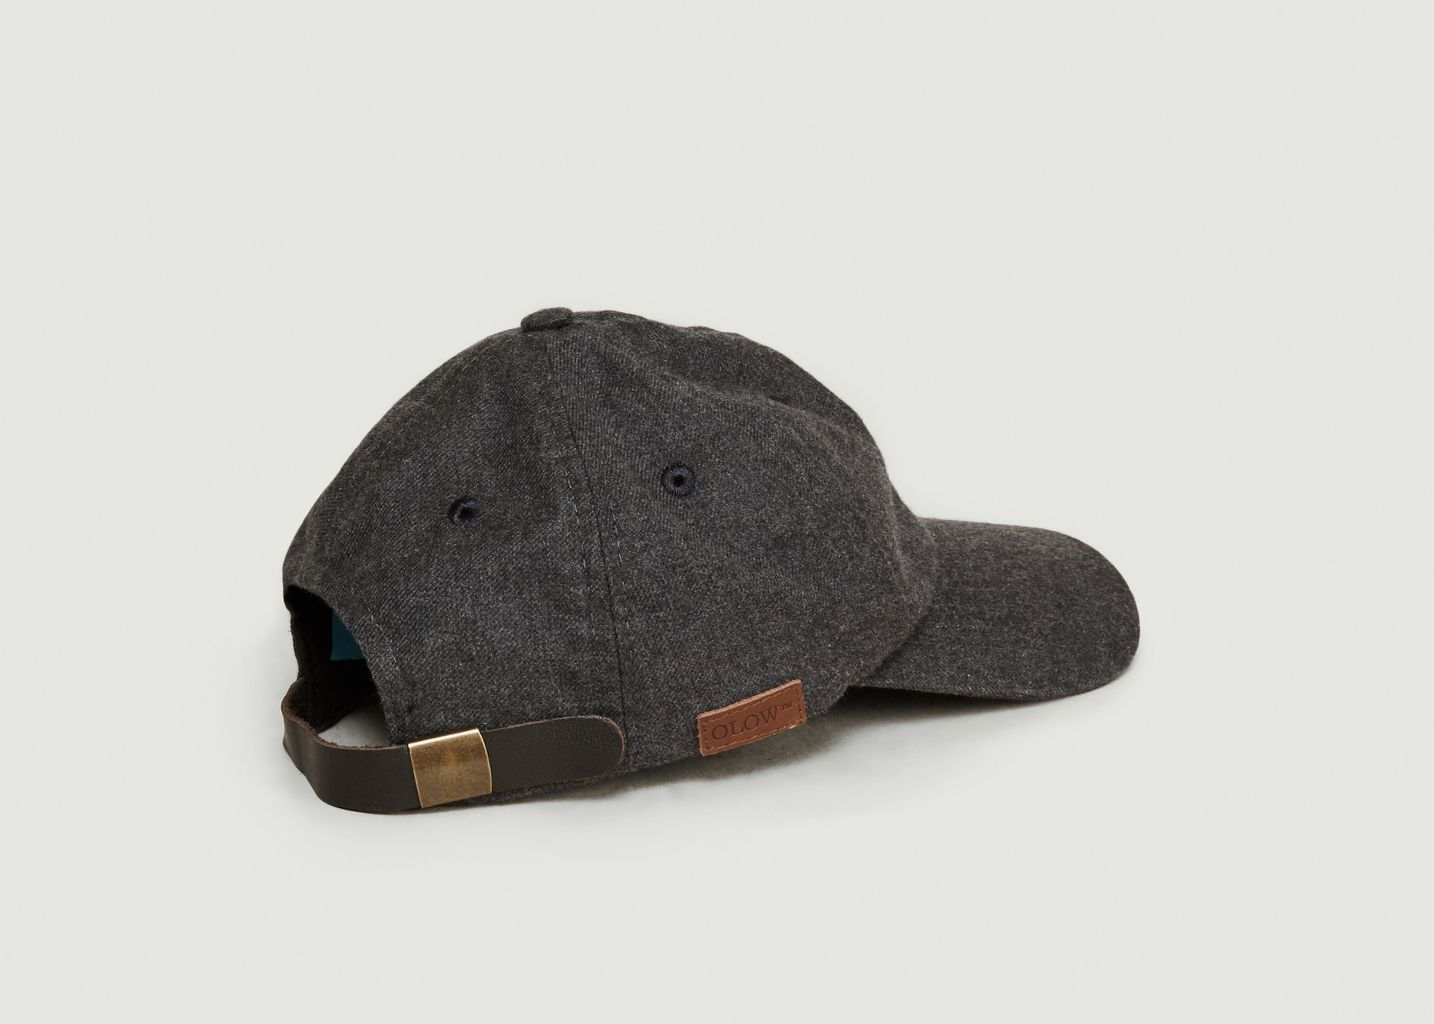 Casquette Choisy - Olow